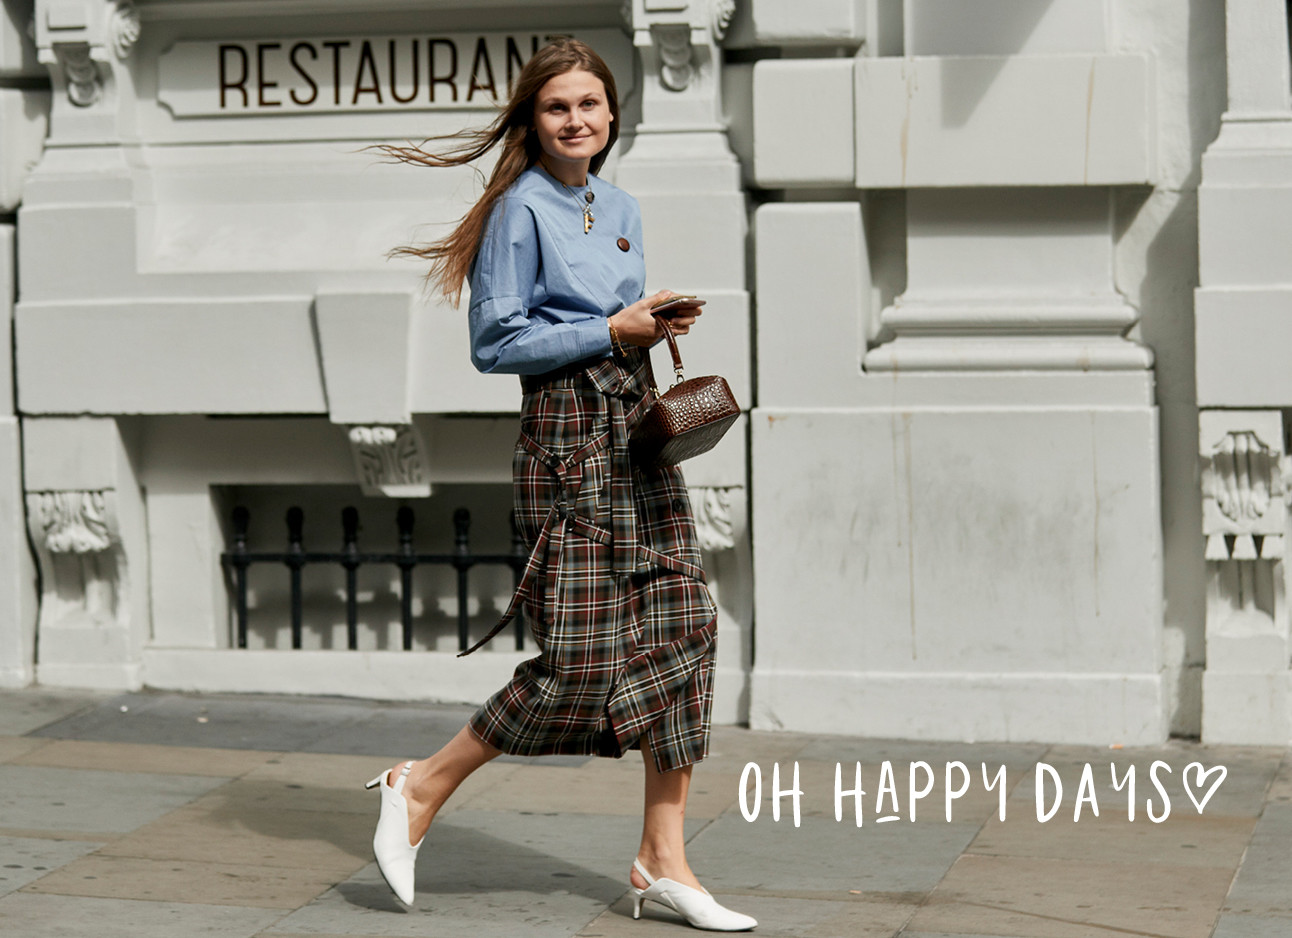 streetstyle fashion, blauwe top, midi rok, witte pumps, oh happy days